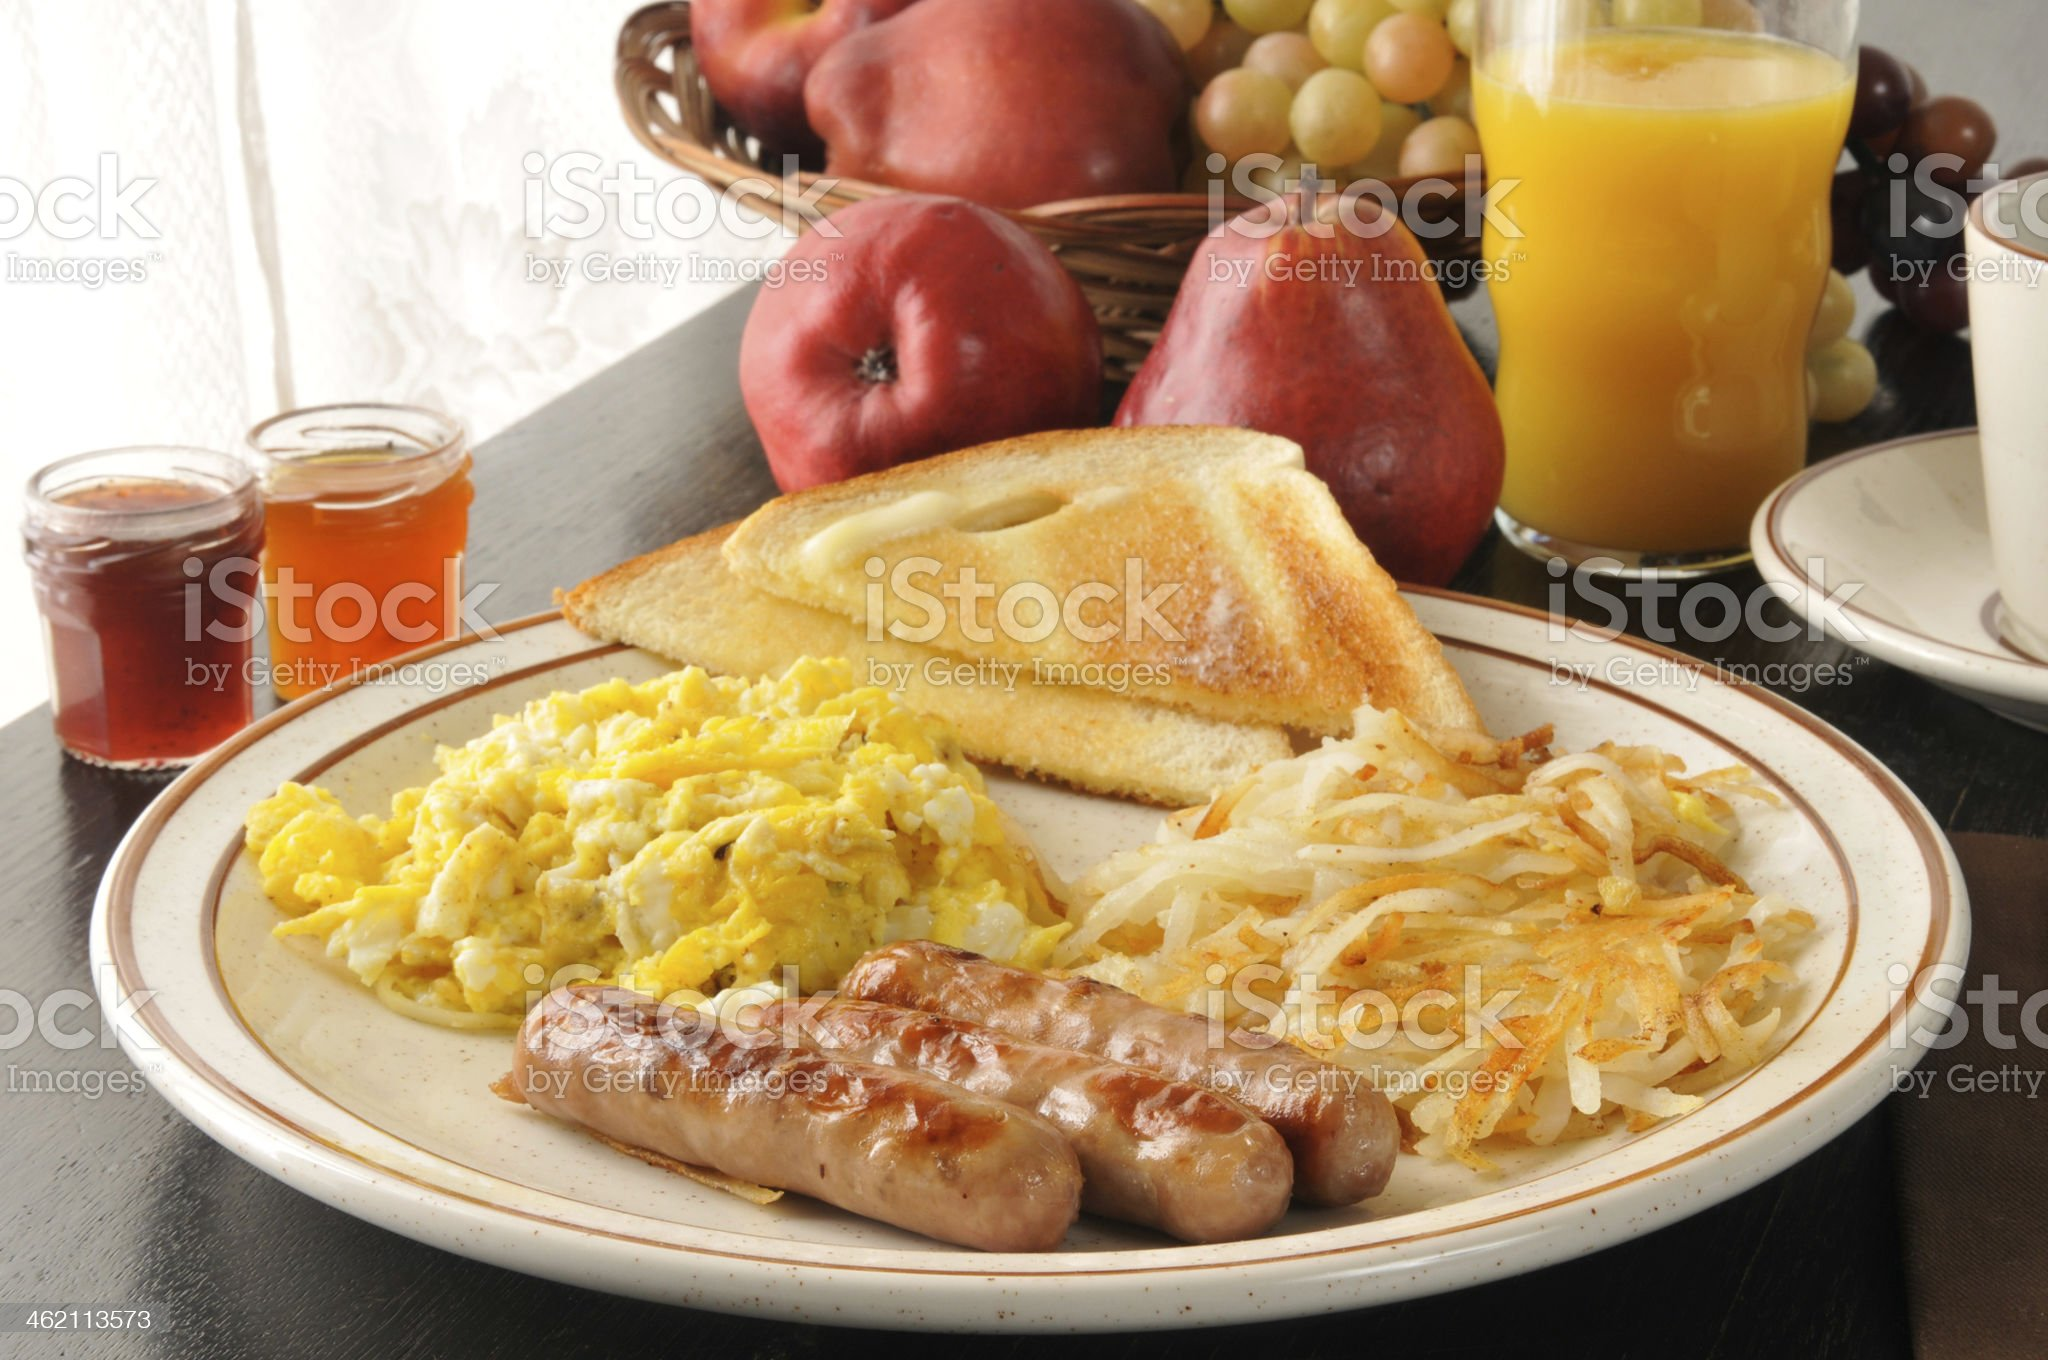 Sausage and egg breakfast royalty-free stock photo